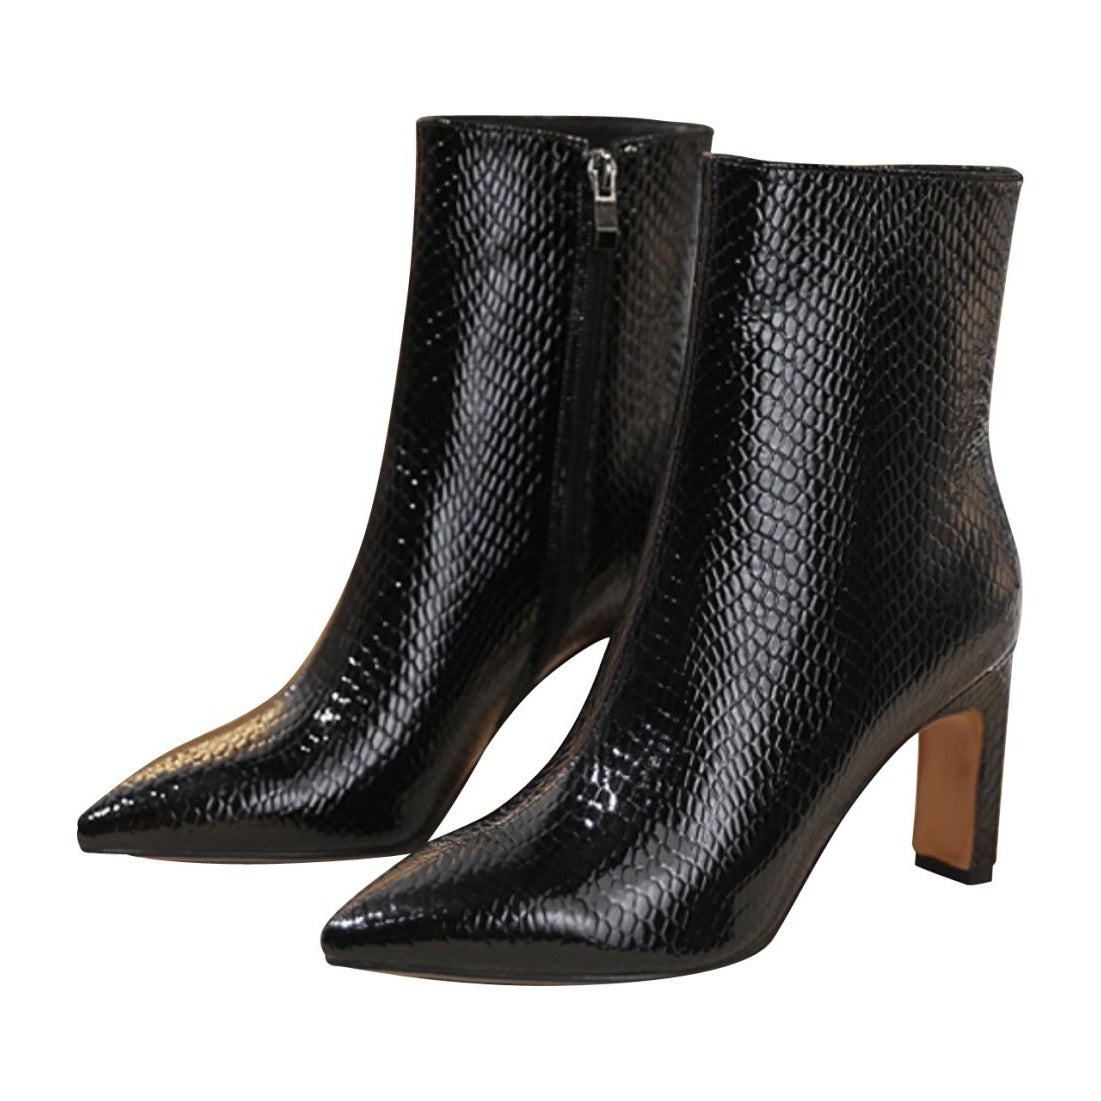 Lizard Print Leather Ankle Boots